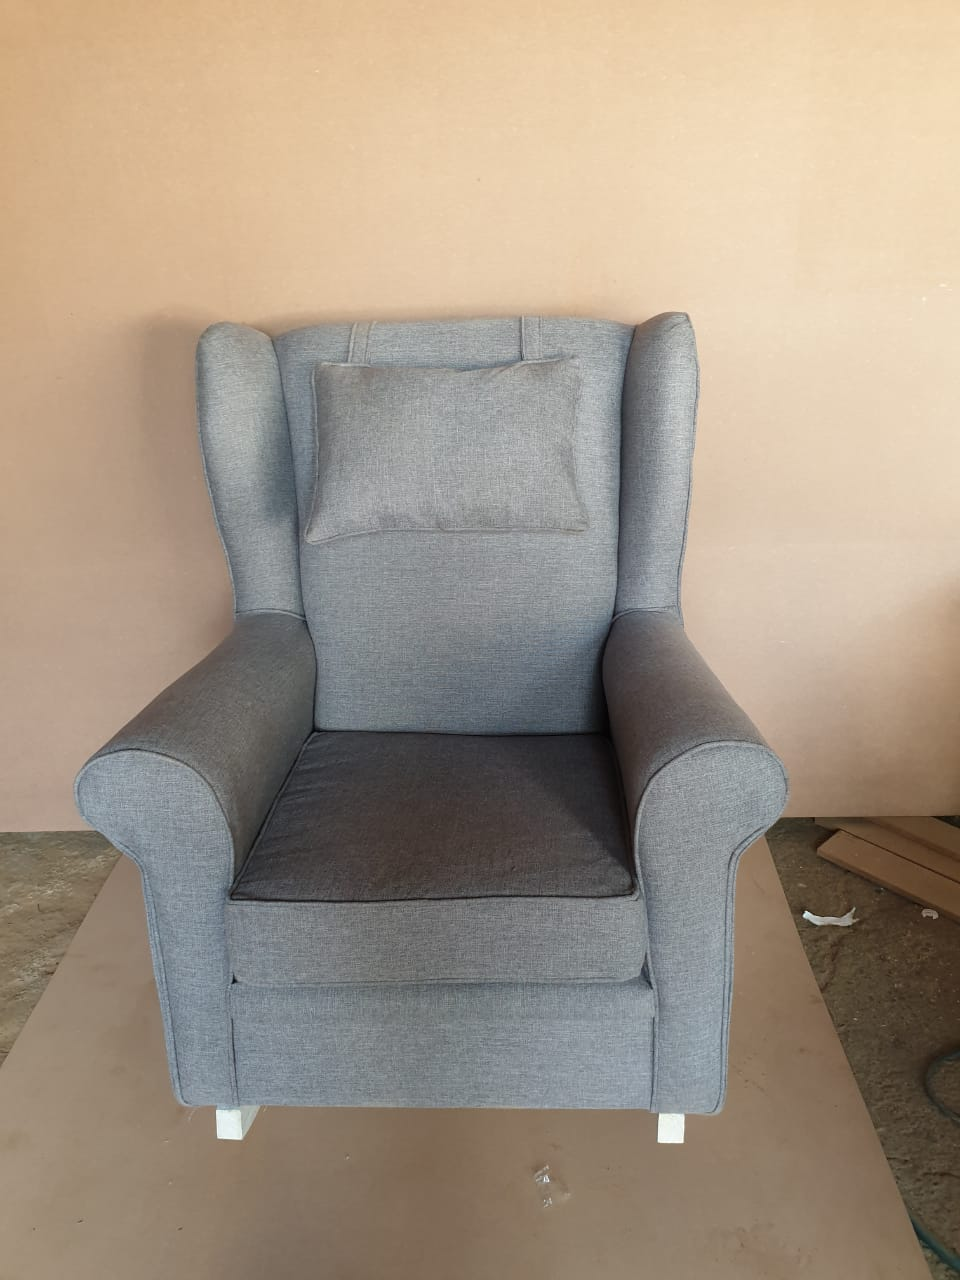 Rocking couch for sale